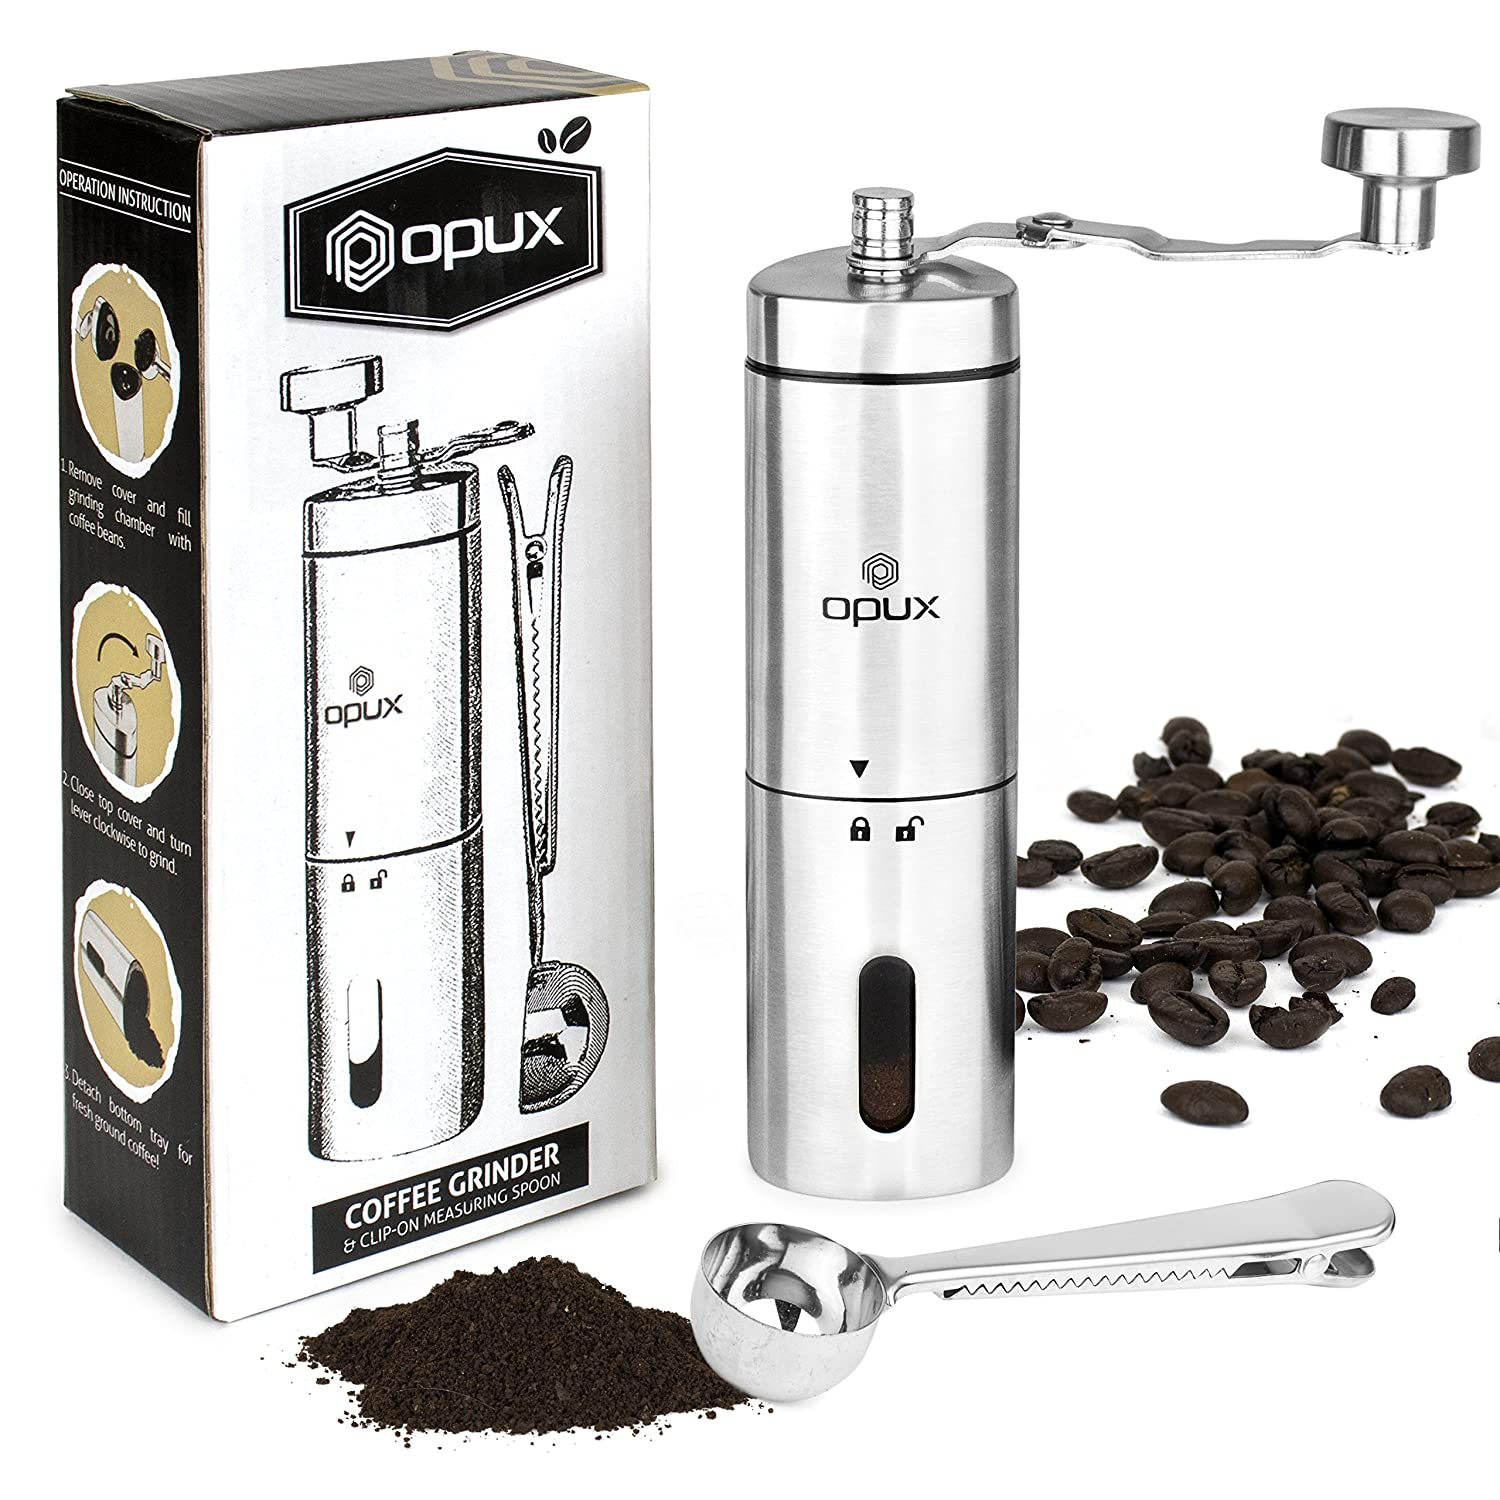 Coffee Grinder Manual | Hand Grinder Coffee Mill | Portable Travel Conical Ceramic Burr Bean Grinder | Adjustable Coarseness, Hand Crank Stainless Steel Mill for Precision Brewing OPUX